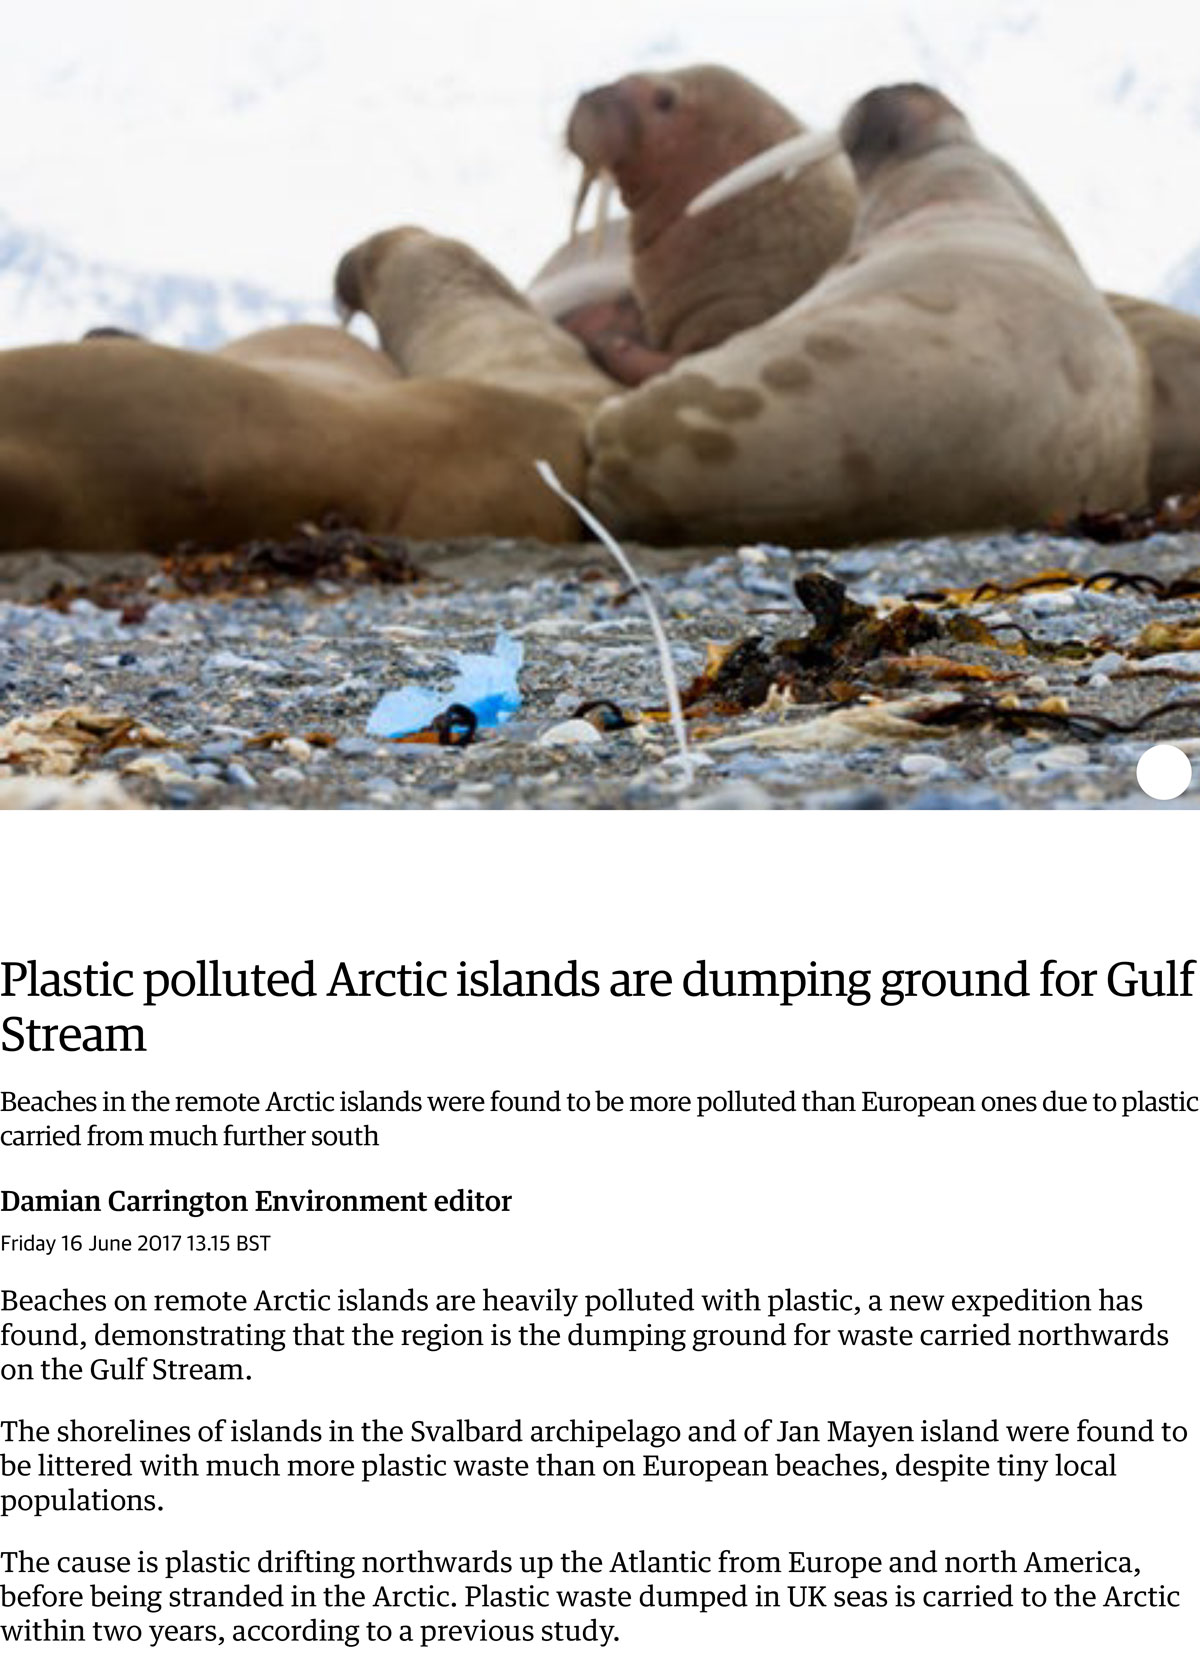 Guardian-2017-06-16-Plastic-polluted-Arctic-islands